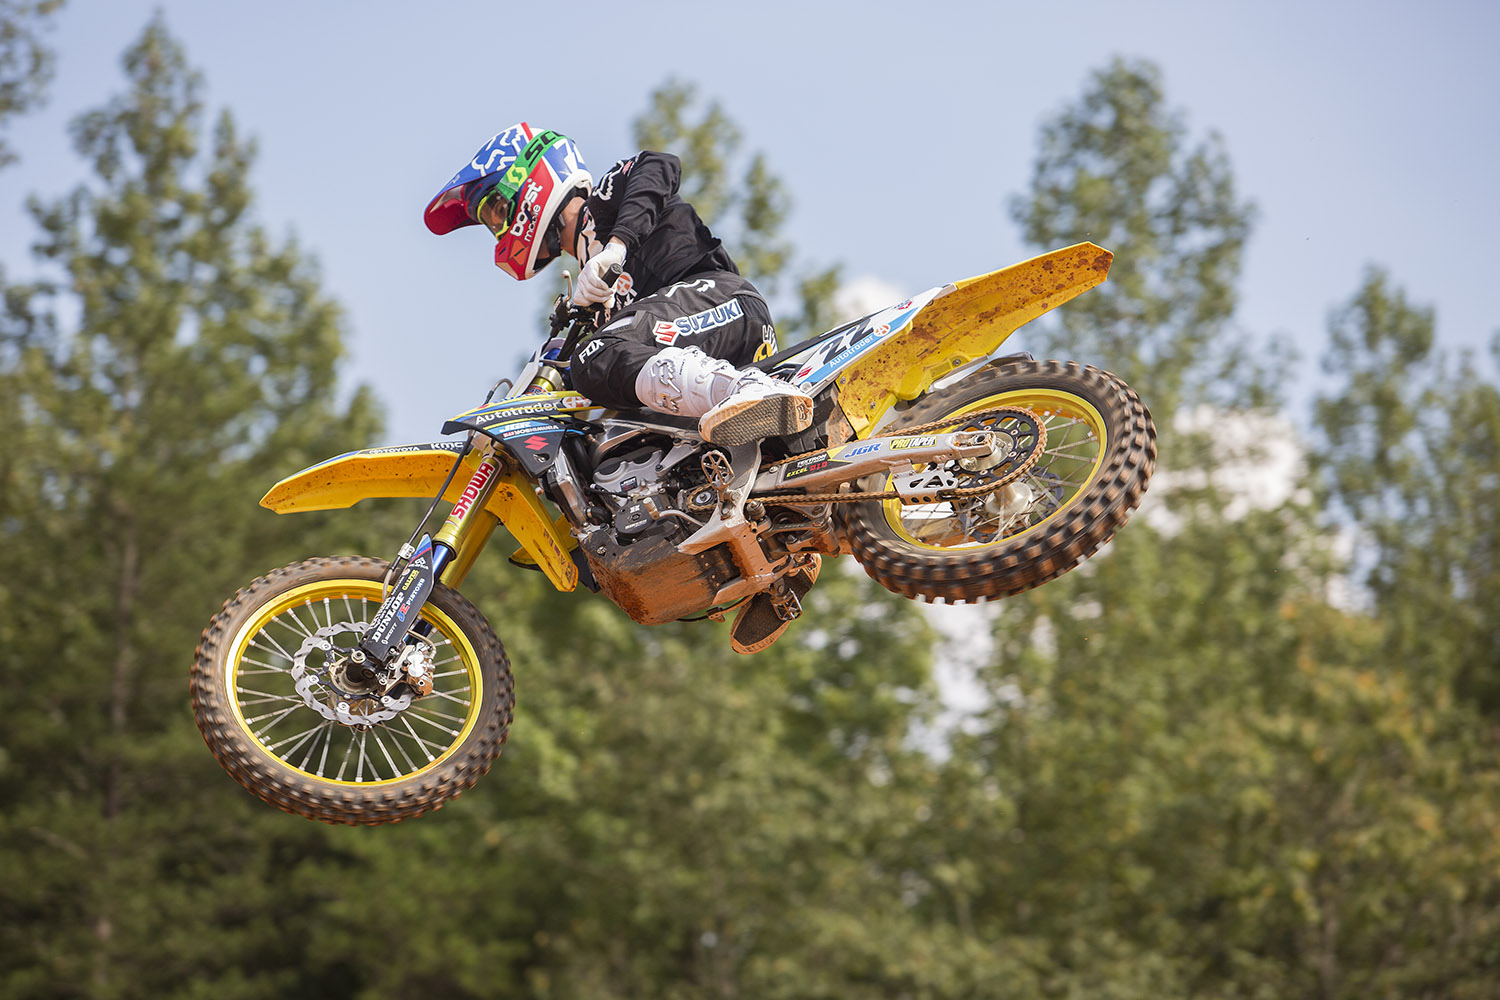 JGRMX: Chad Reed to race Monster Energy Cup with JGRMX